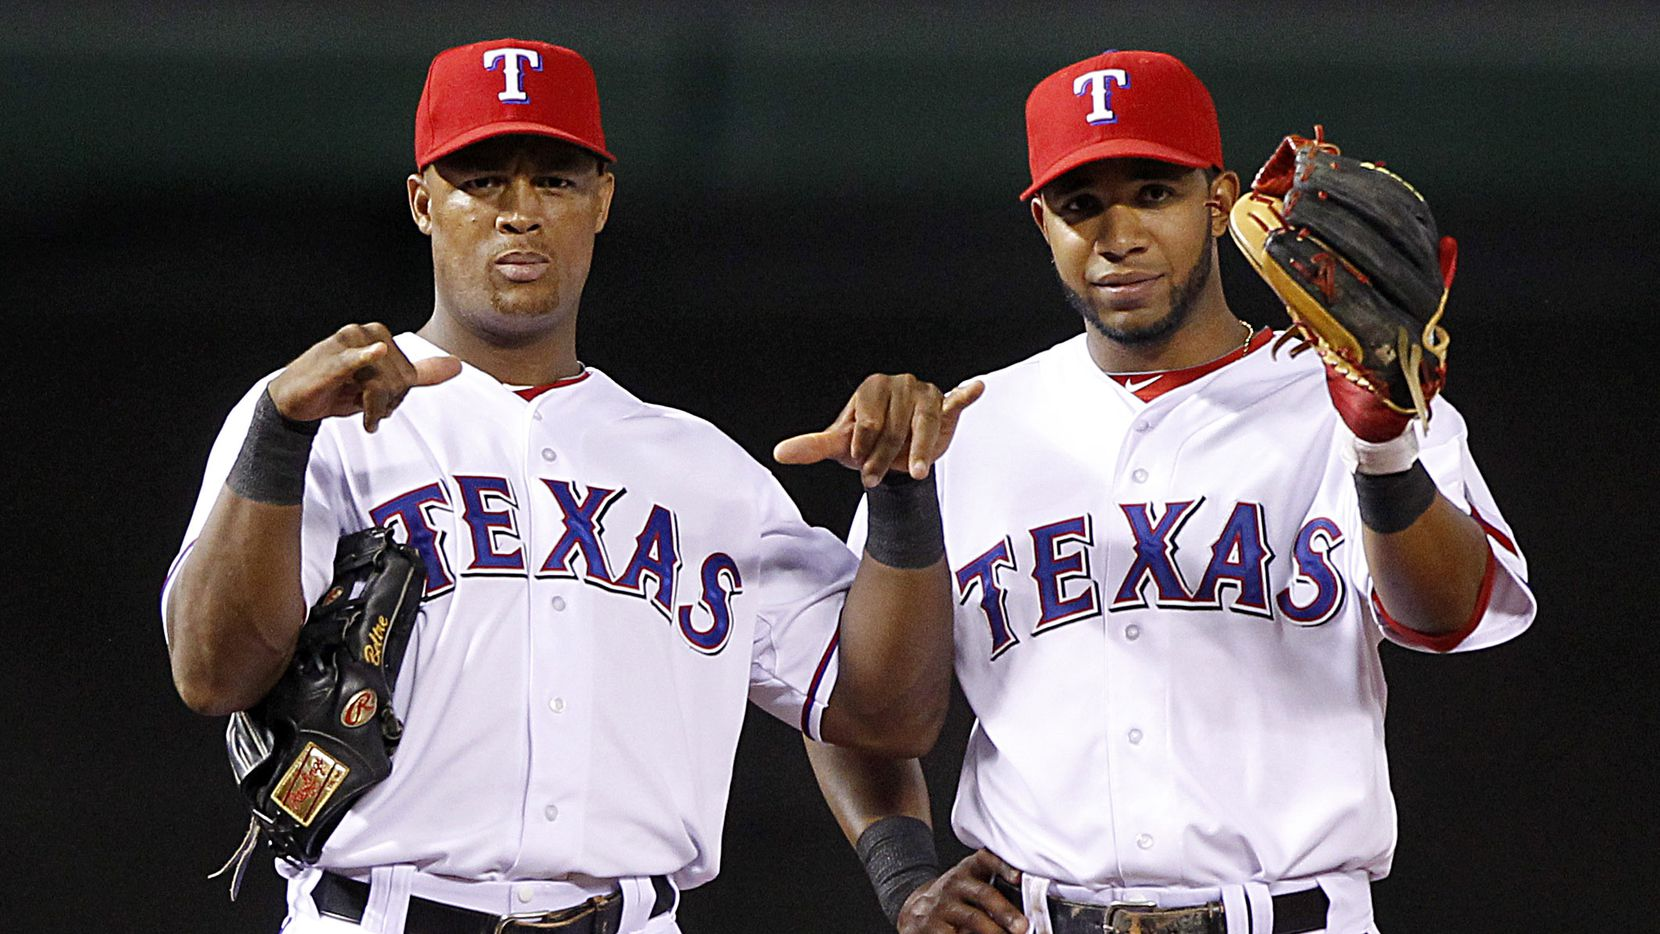 Texas Rangers third baseman Adrian Beltre, left, and shortstop Elvis Andrus (1) flash signals to the dugout during a break in the action agains the Oakland A's at the Rangers Ballpark in Arlington, Tuesday, May 21, 2013.